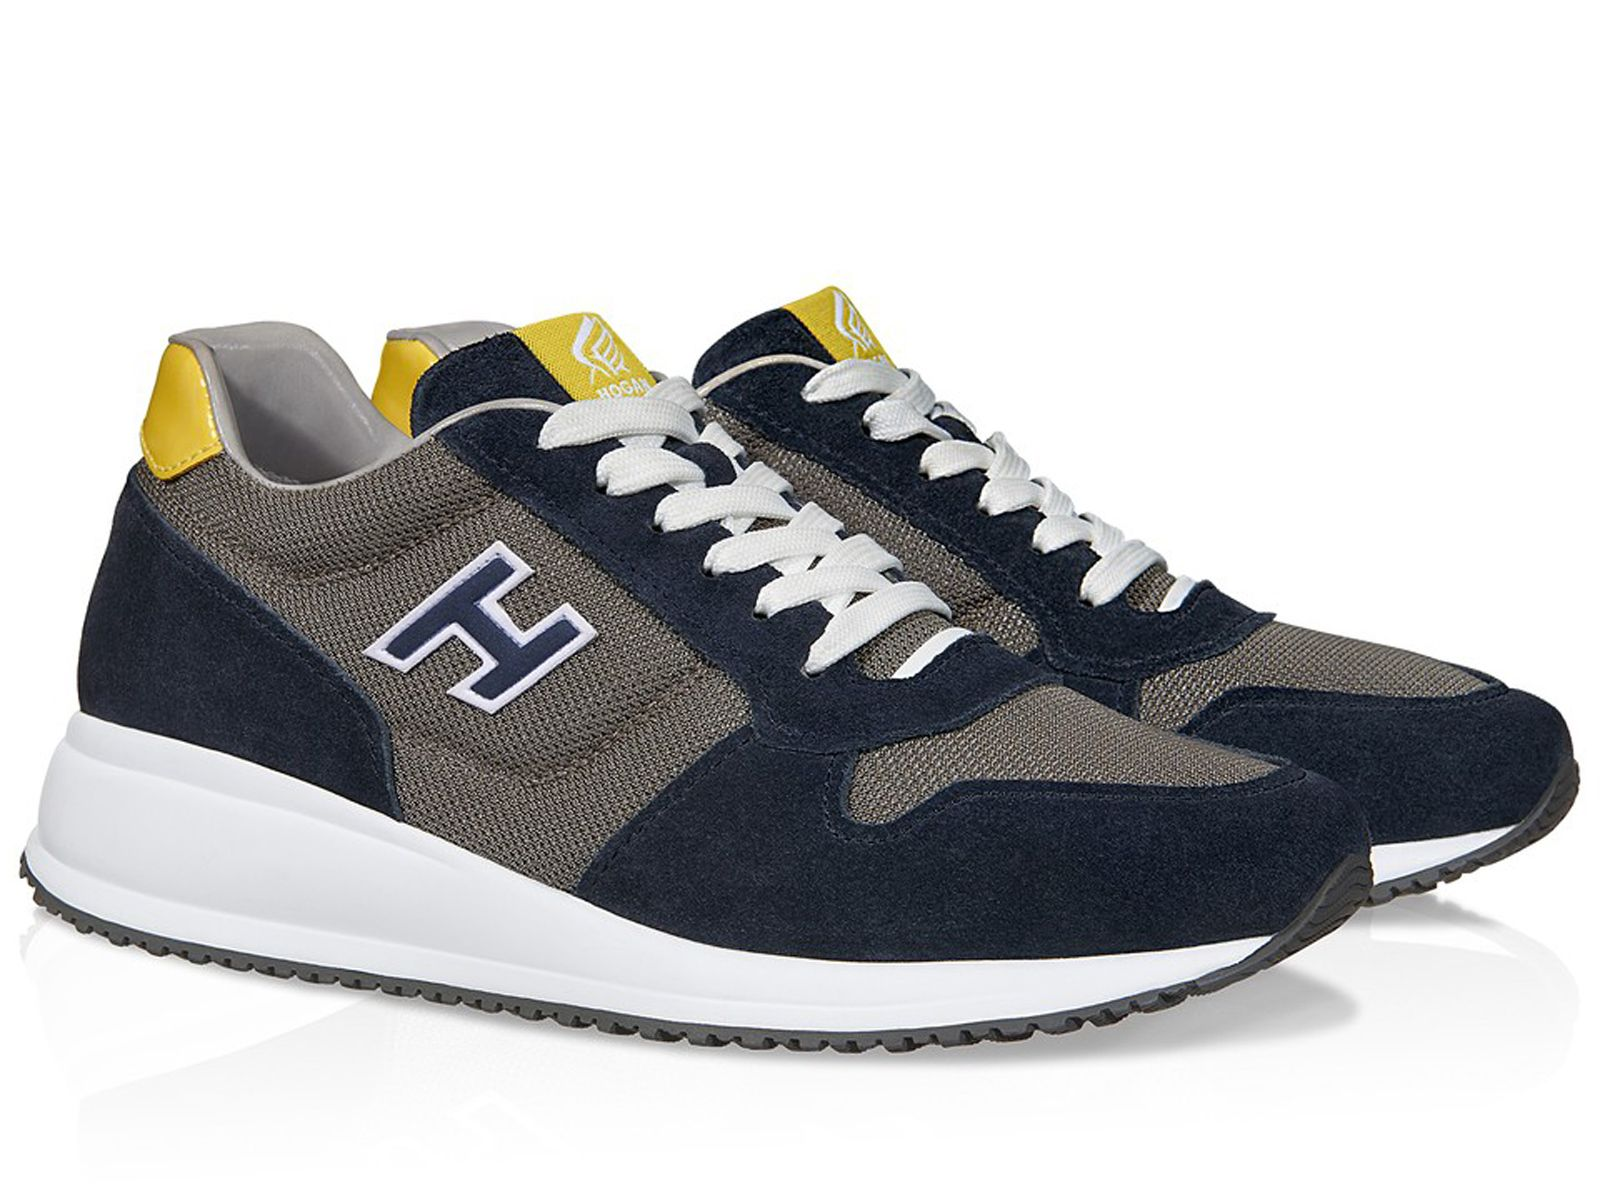 Hogan Interactive N20 suede and high-tech fabric sneakers ...